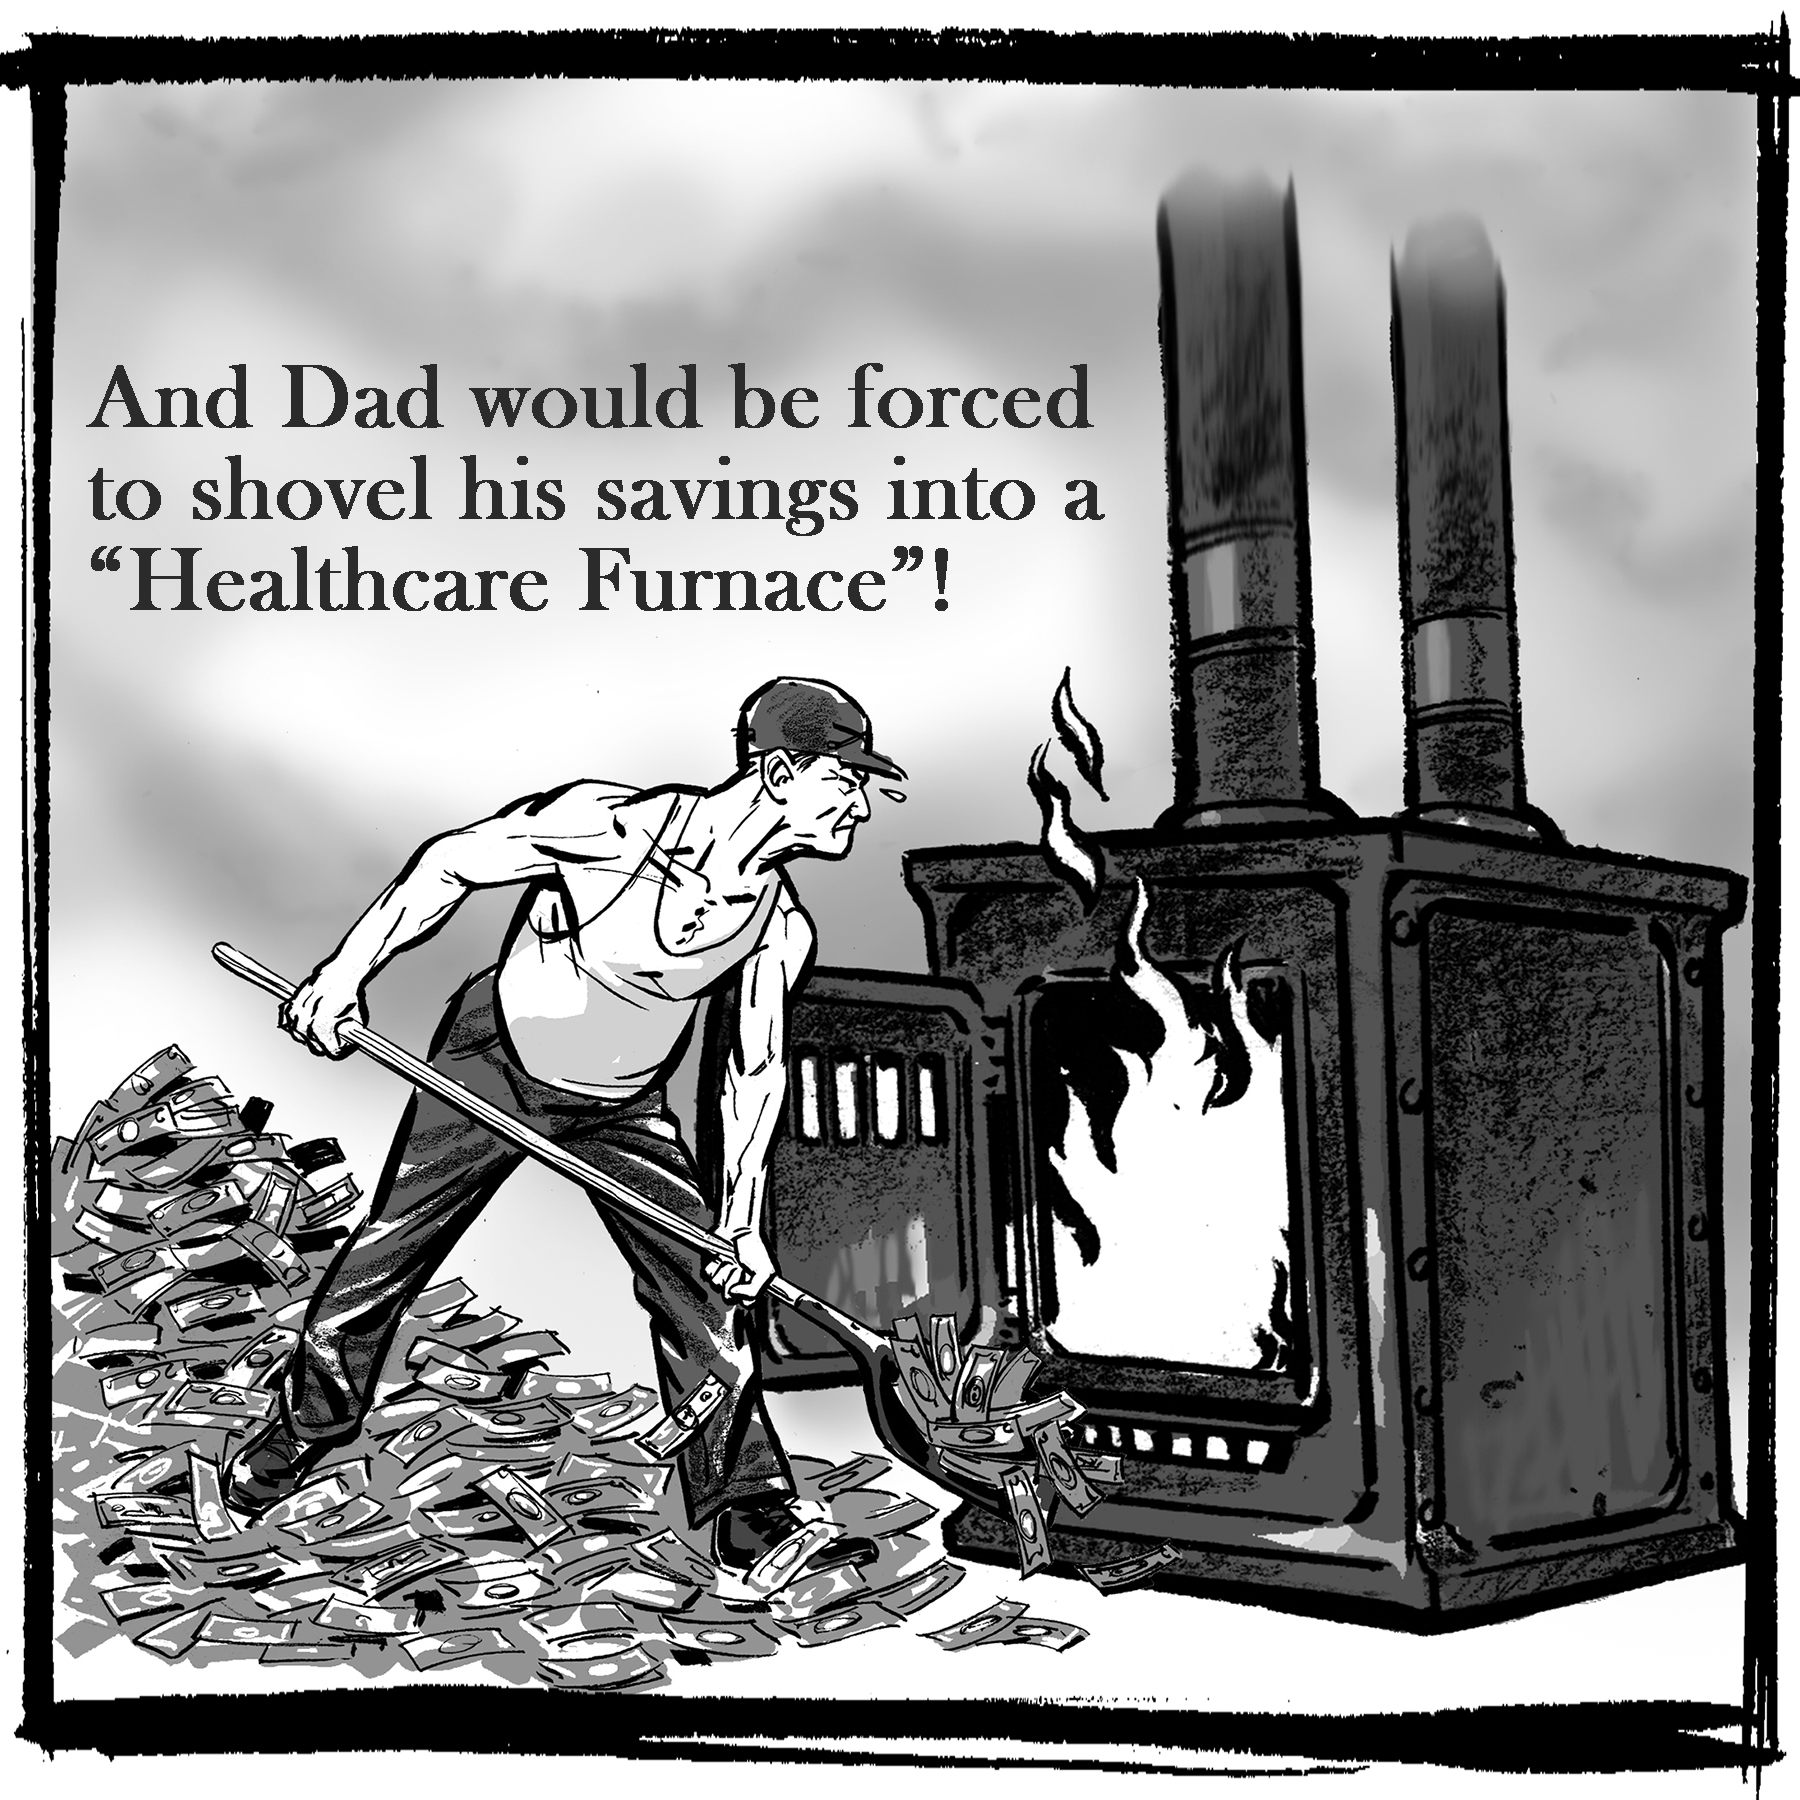 And Dad would be forced to shovel his savings into a %22Healthcare Furnace%22!